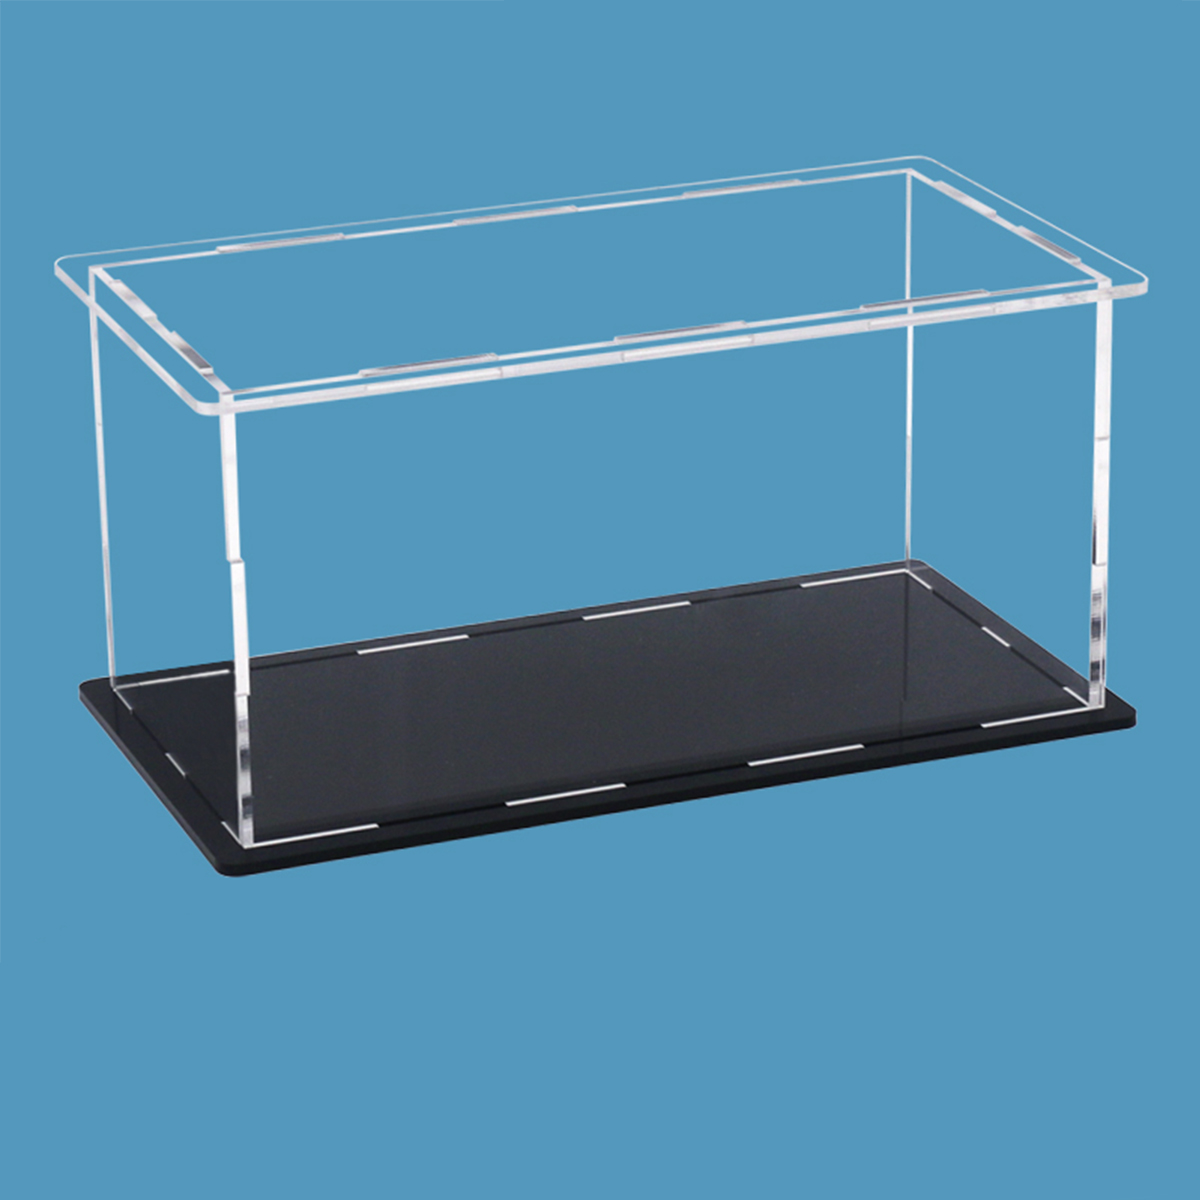 DIY Acrylic Display Case for 21302 Blocks Toy Bricks Transparent/Black Base Display Case (Model Not Included) image